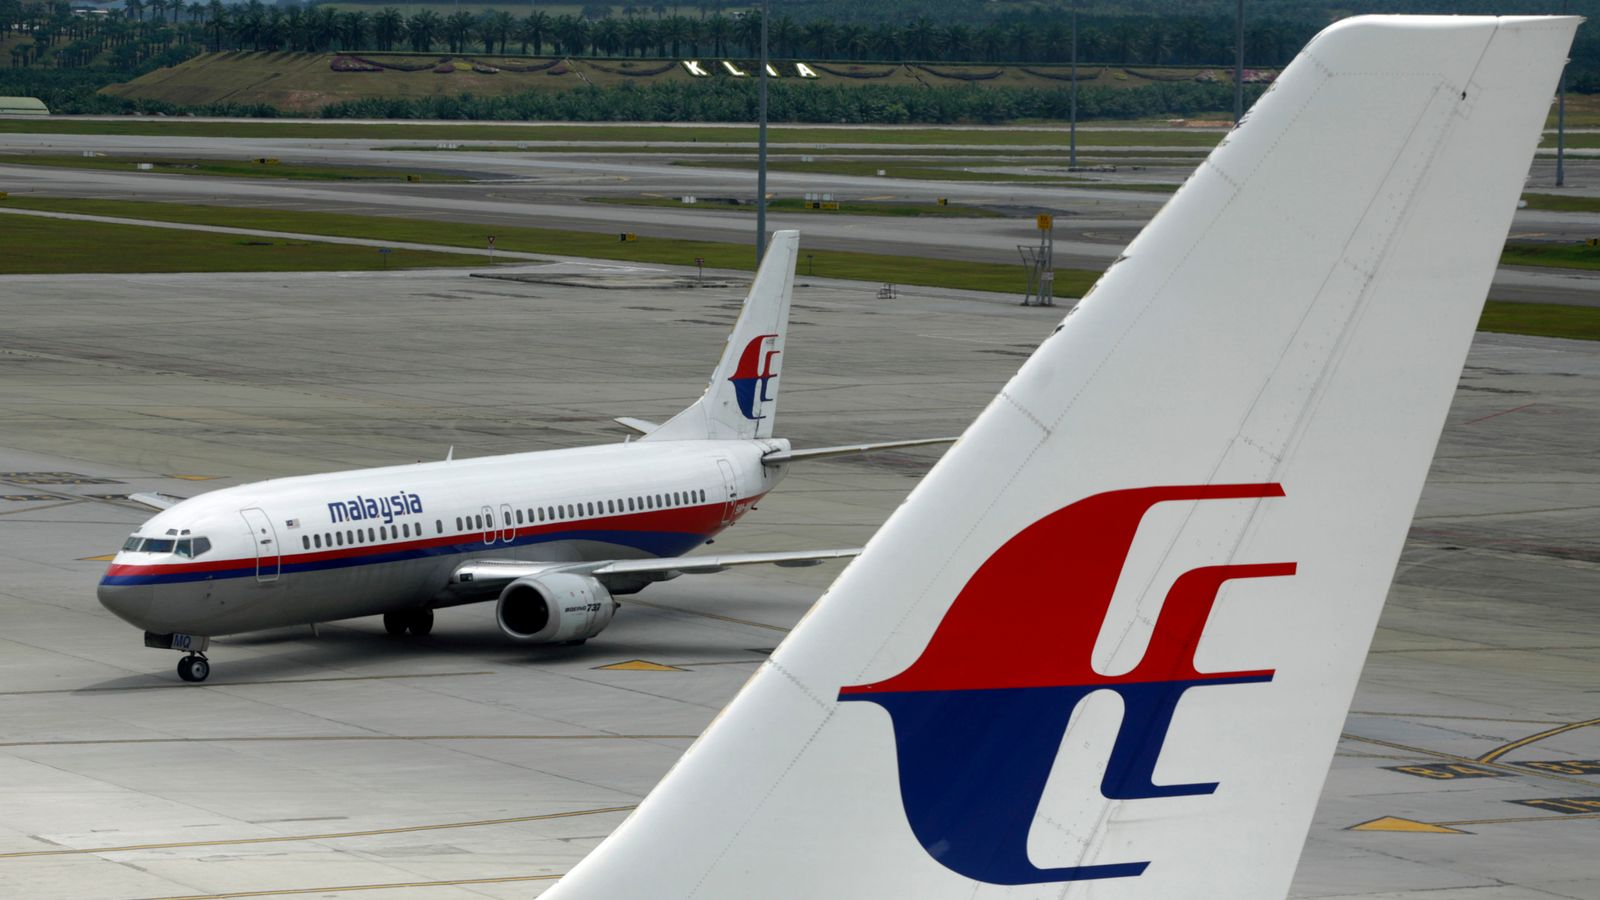 sport betting sites in malaysia plane